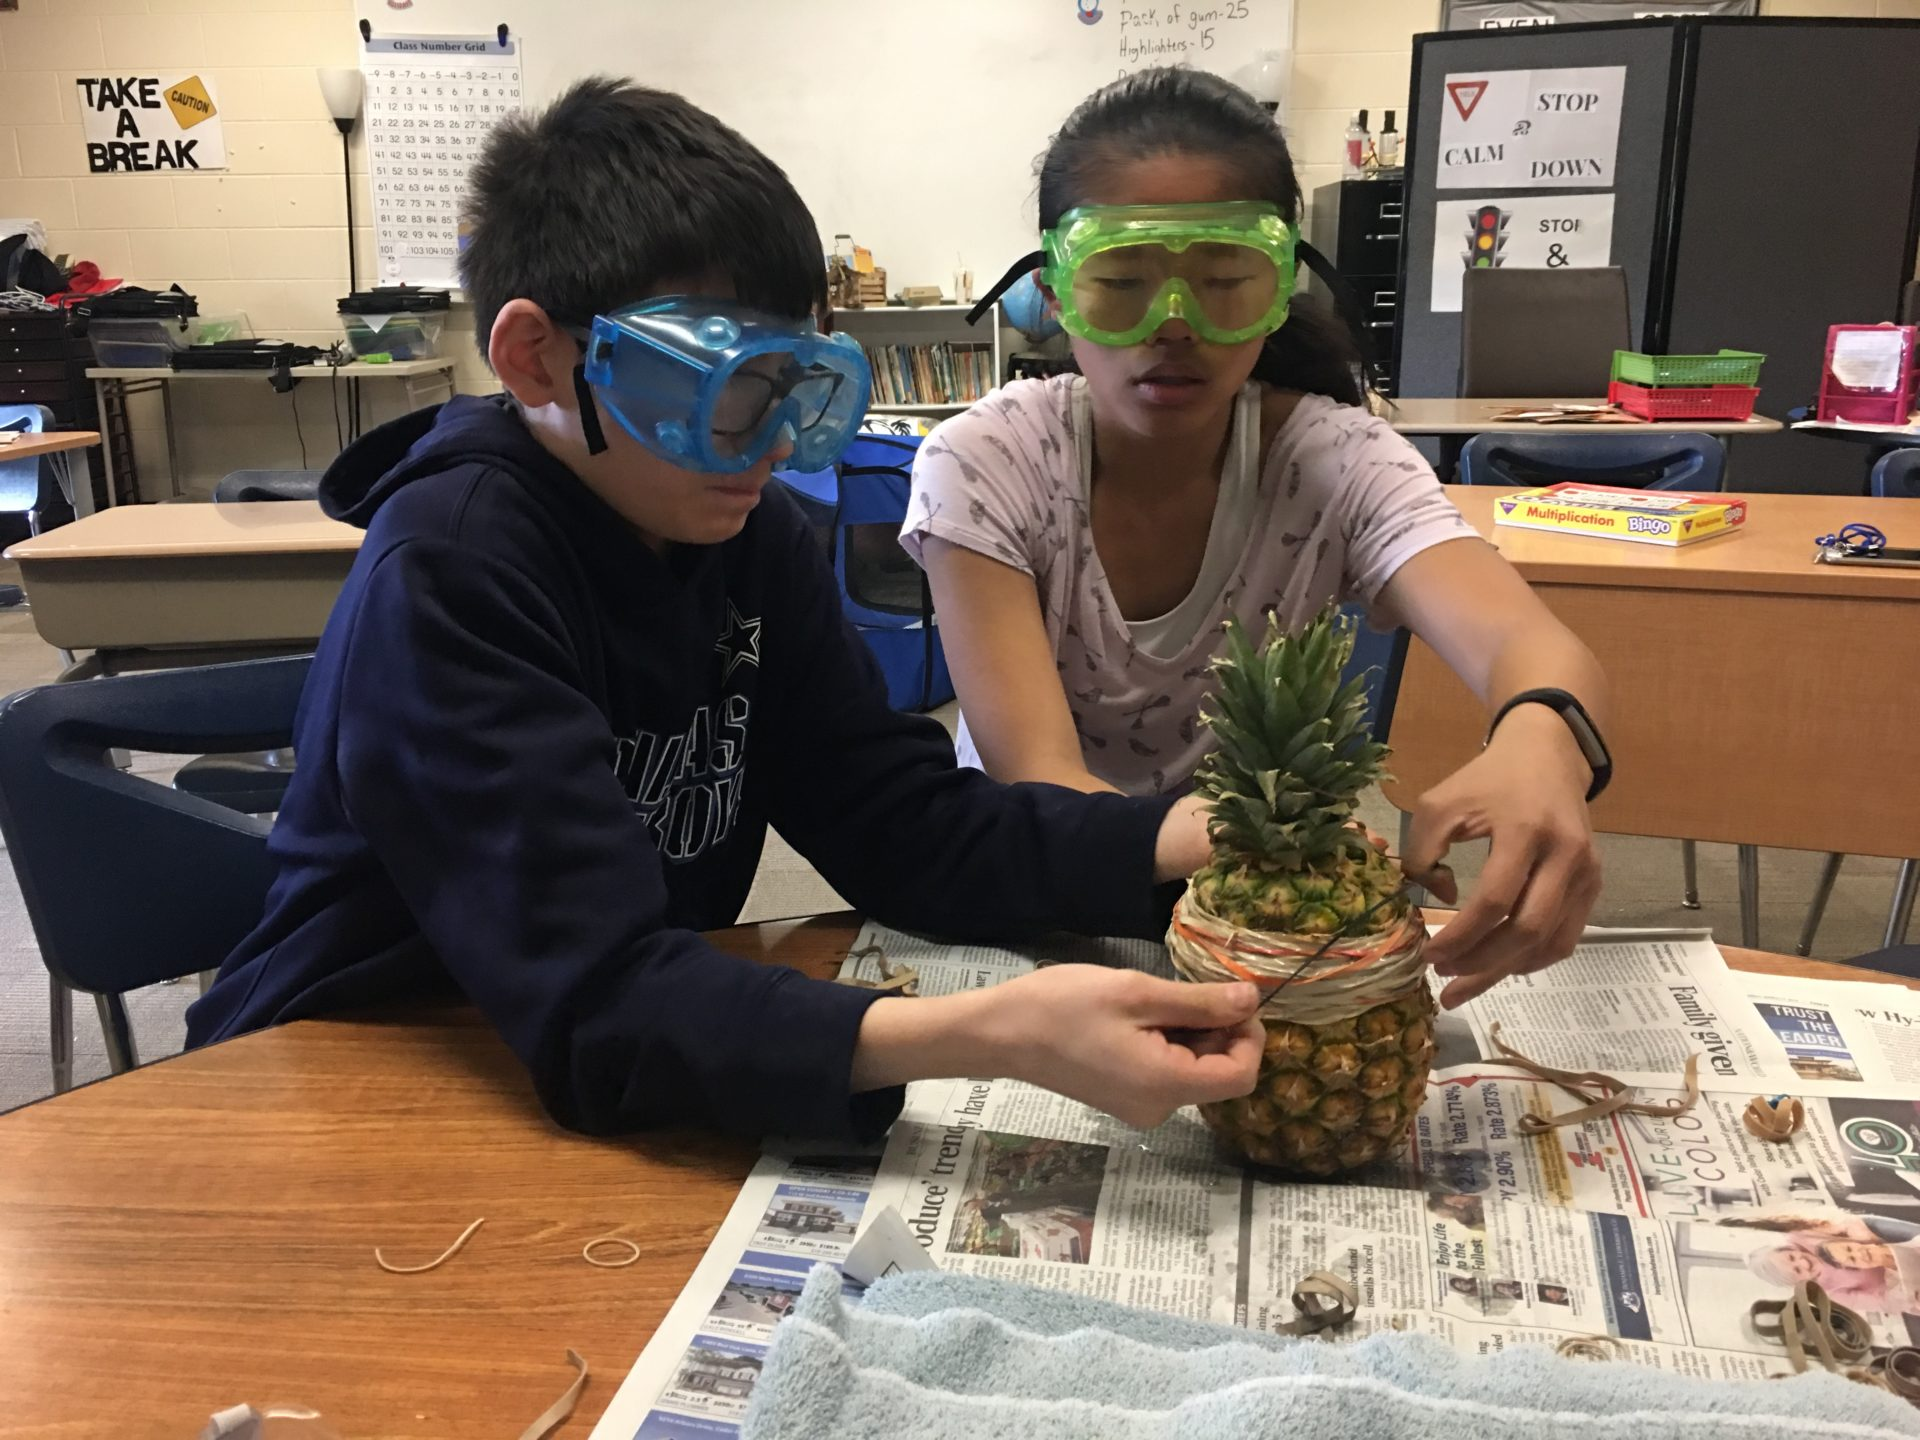 students participate in a science experiment